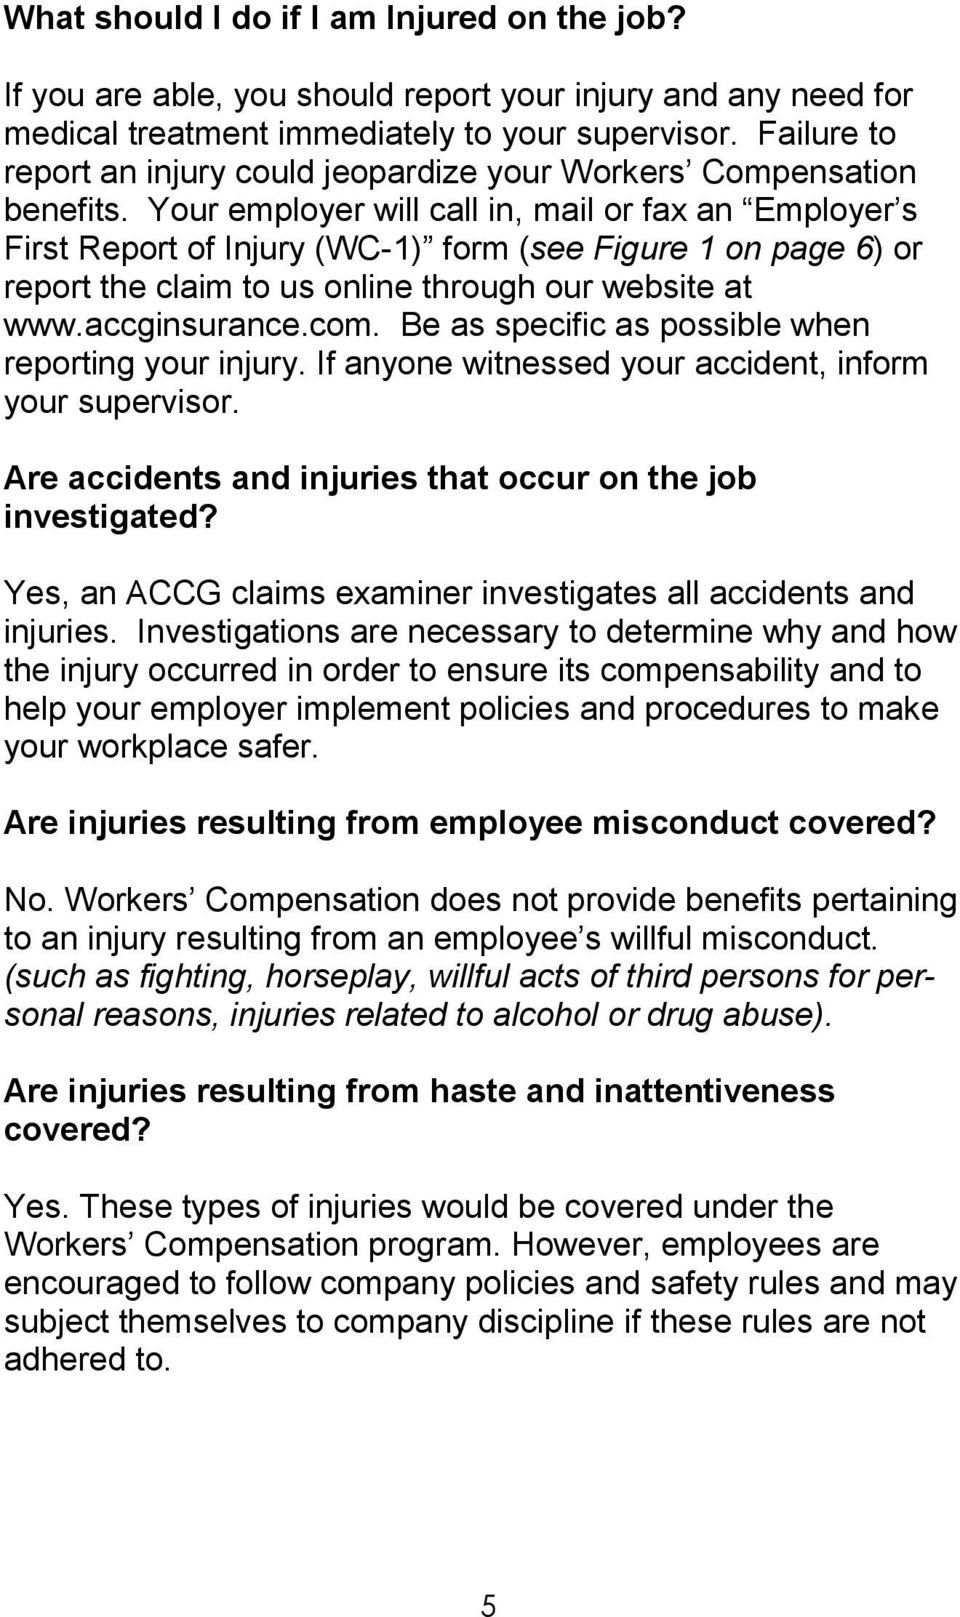 Your employer will call in, mail or fax an Employer s First Report of Injury (WC-1) form (see Figure 1 on page 6) or report the claim to us online through our website at www.accginsurance.com.